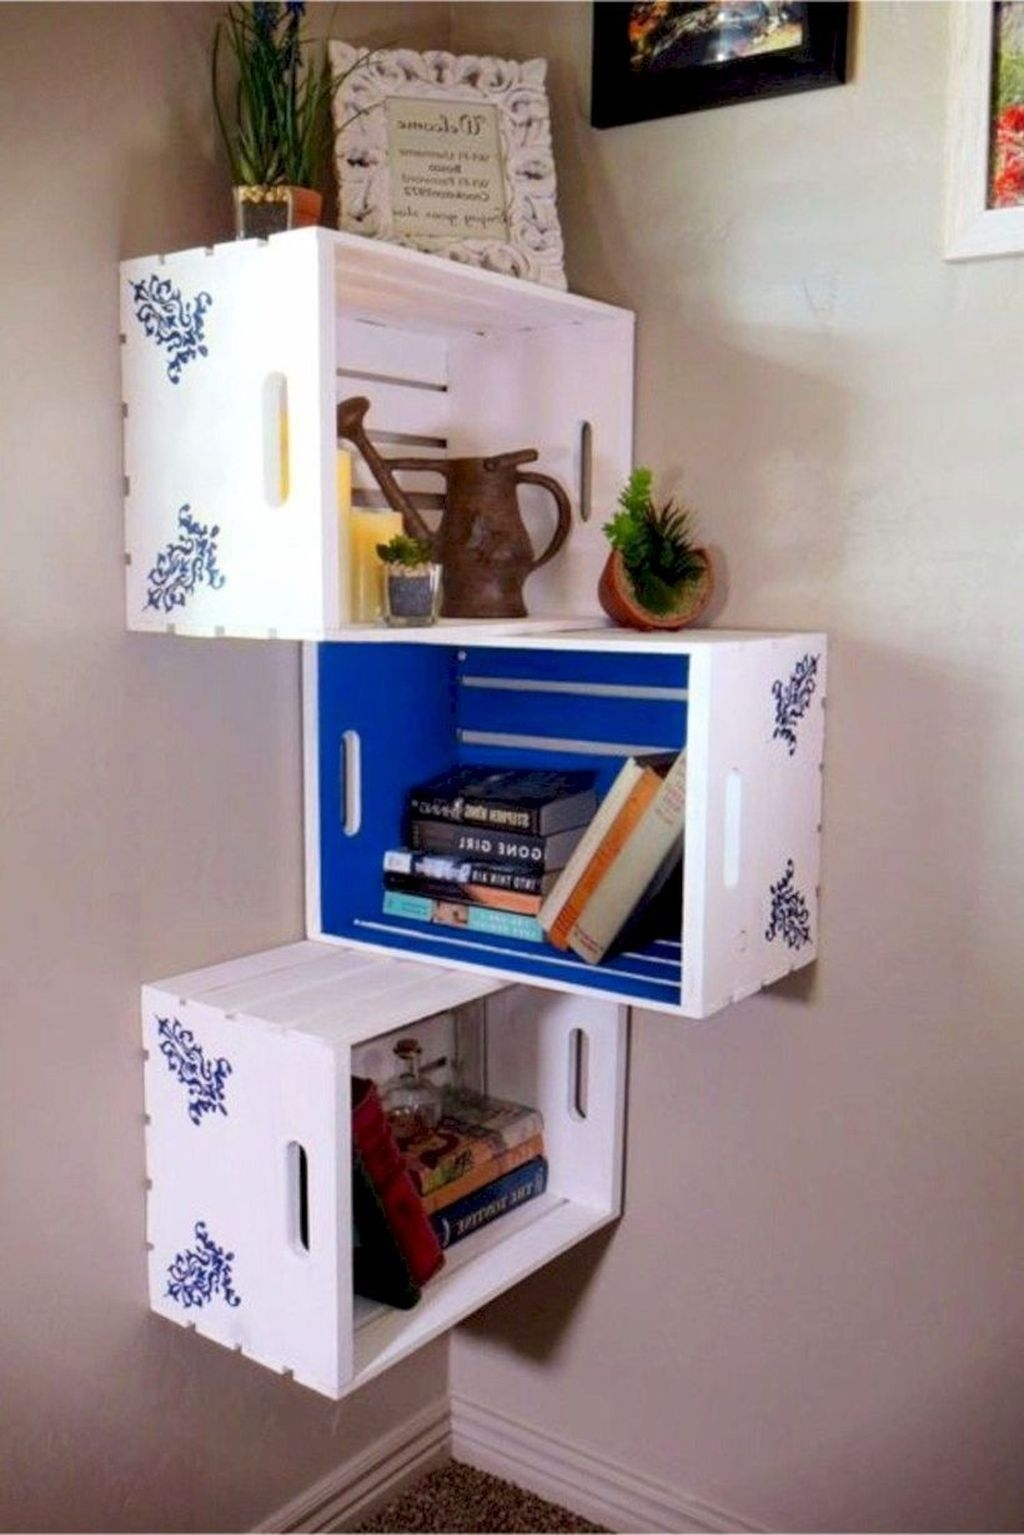 Stylish Storage Design Ideas For Small Spaces11